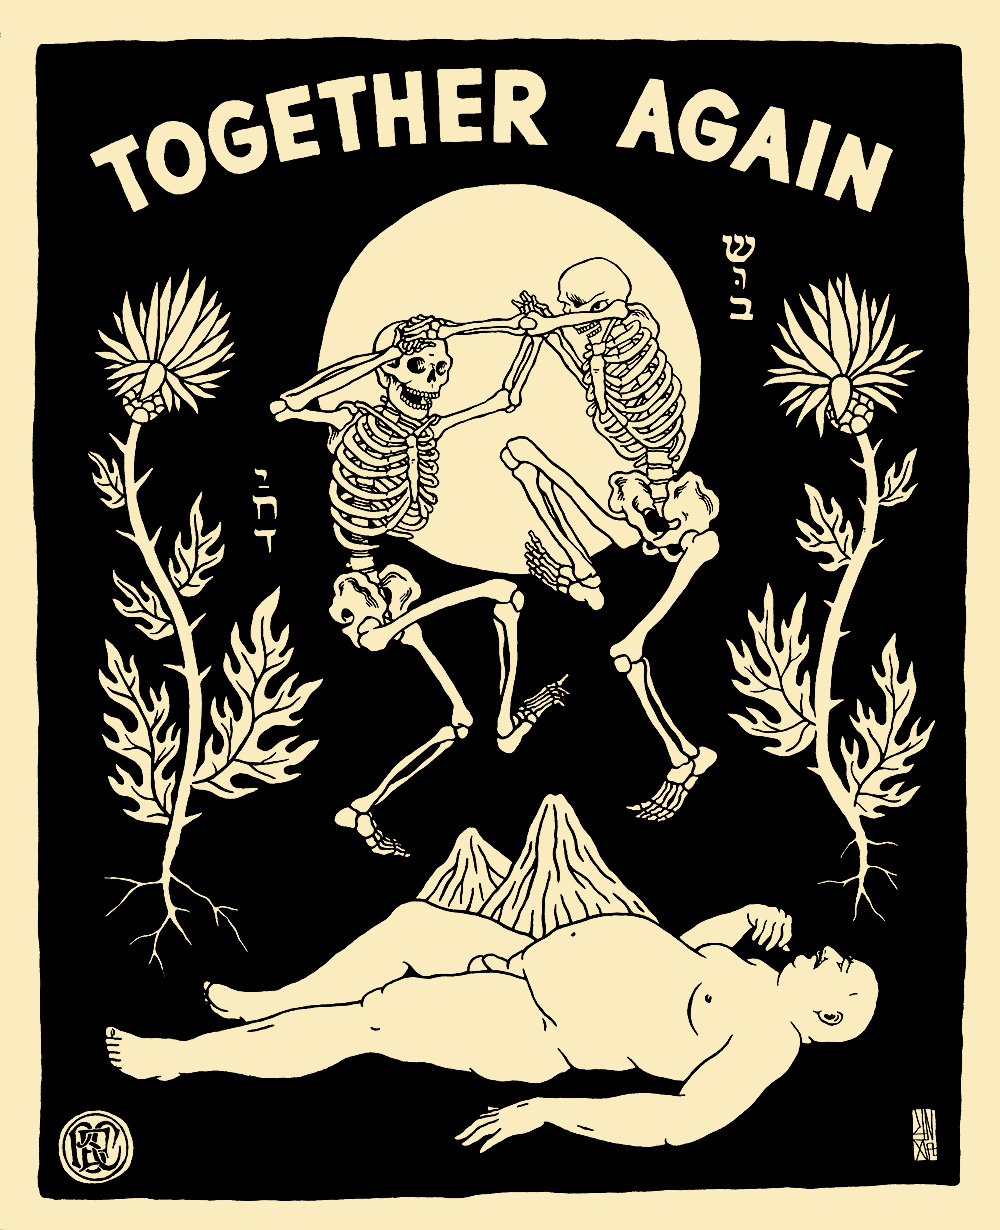 Unga (Broken Fingaz) - 'Together Again' - Acrylic on vintage paper